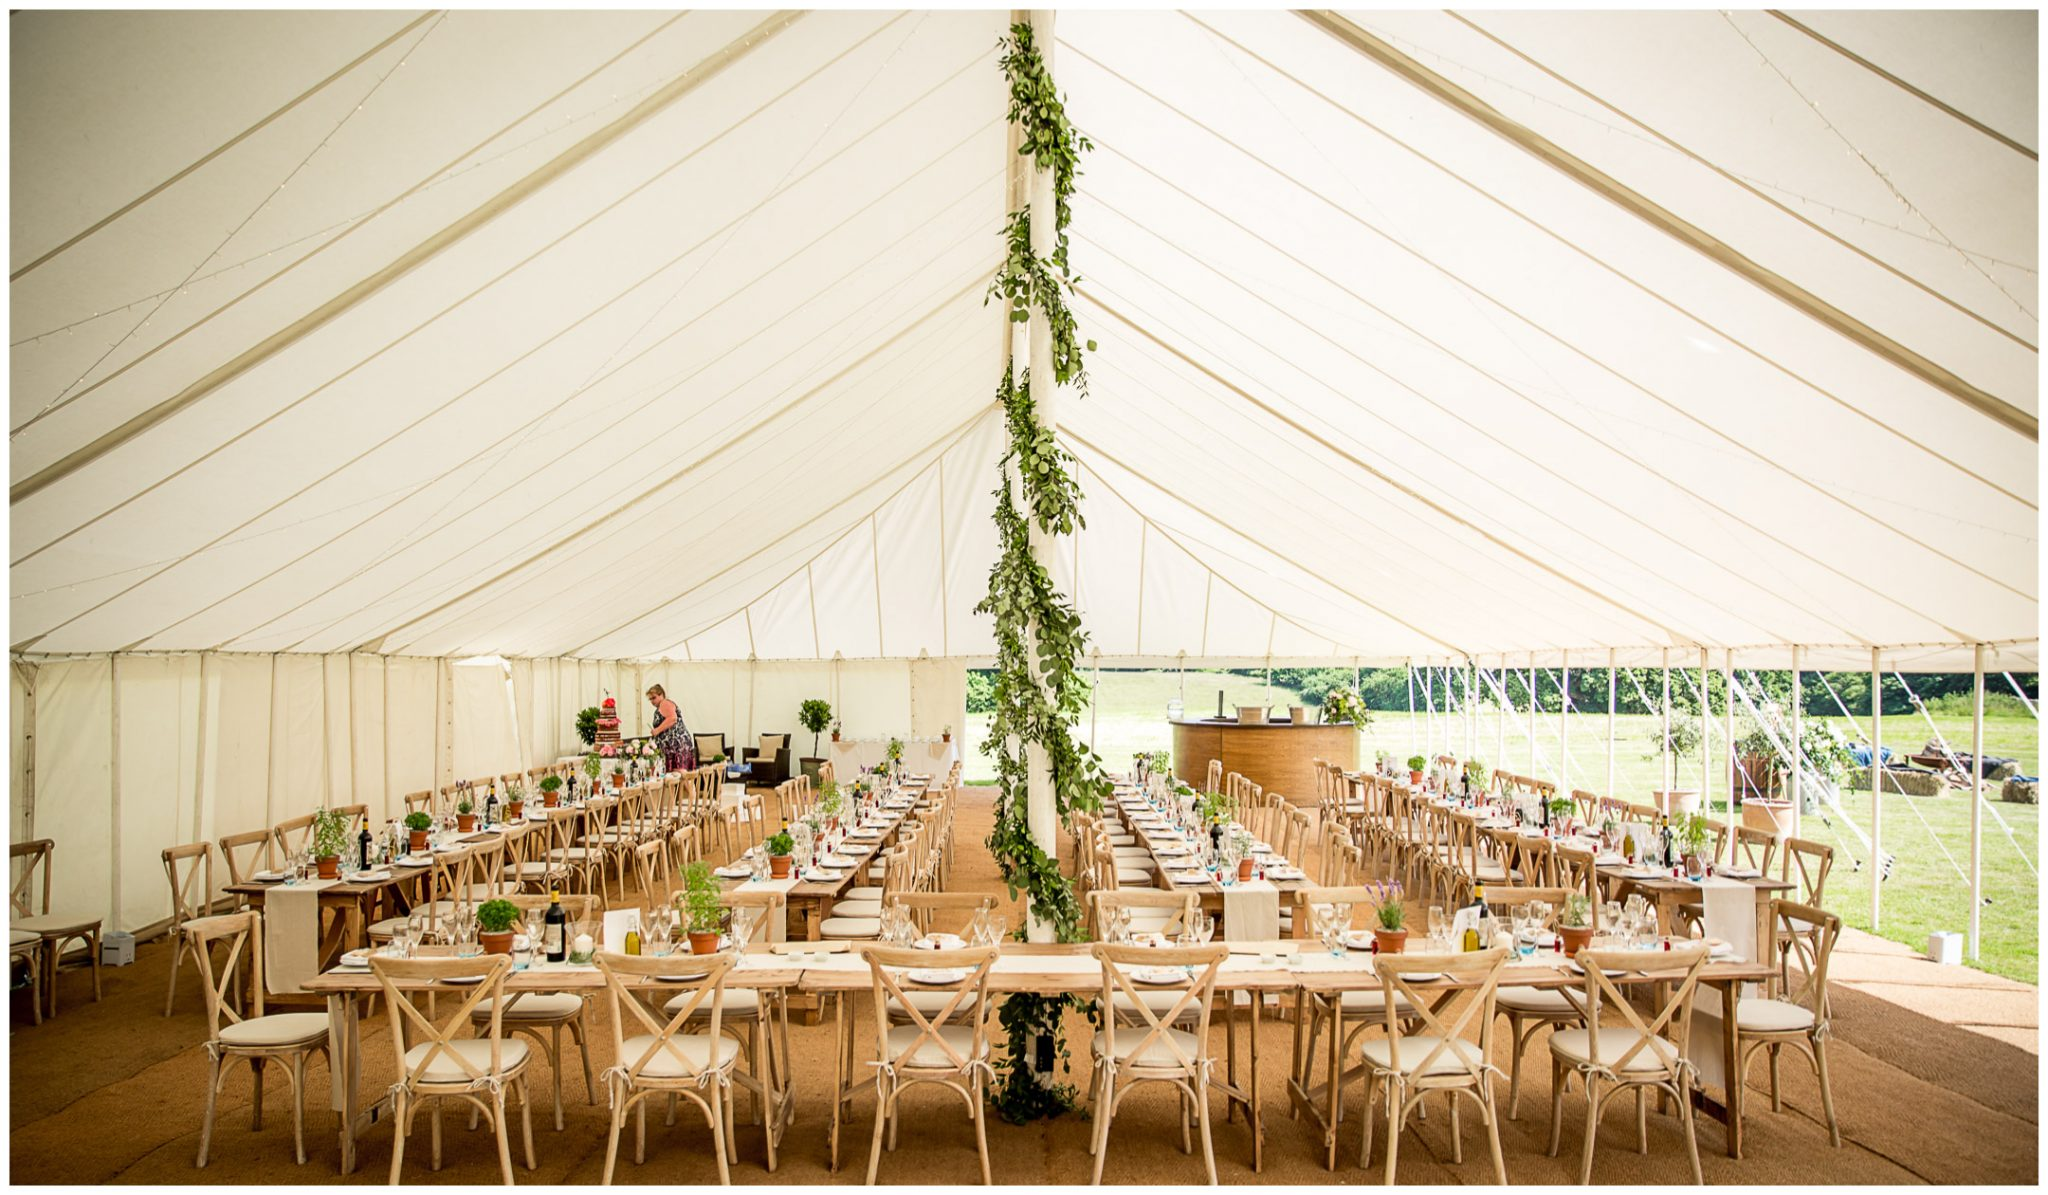 Wedding reception marquee set up in a banqueting style